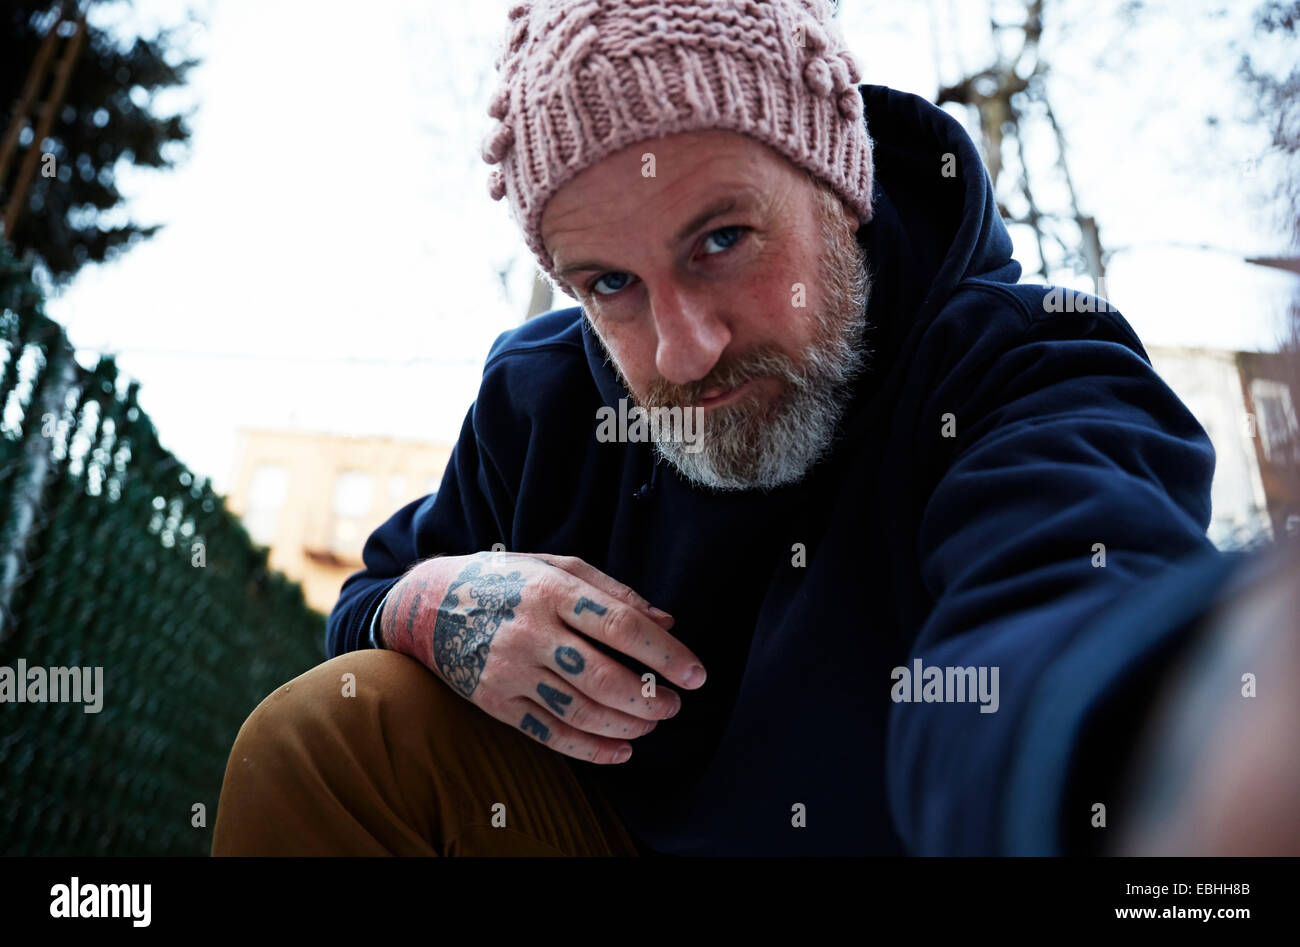 Mature man crouching with arm out to take self portrait - Stock Image